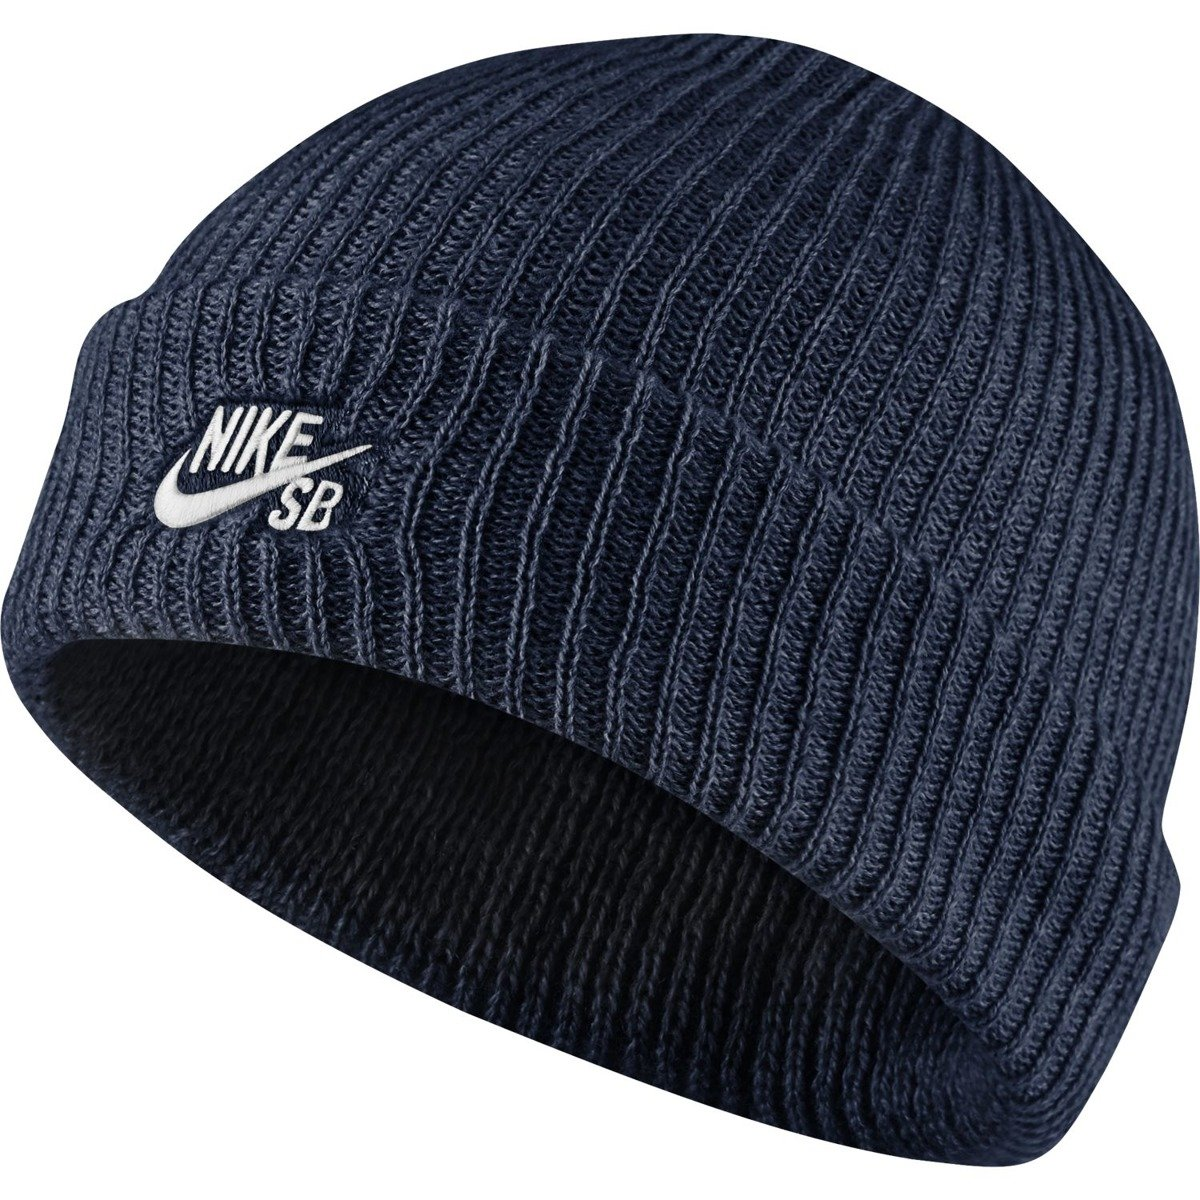 Czapka Nike SB Fisherman Beanie Med Team Rd Htr white navy  55e3f4af31aa